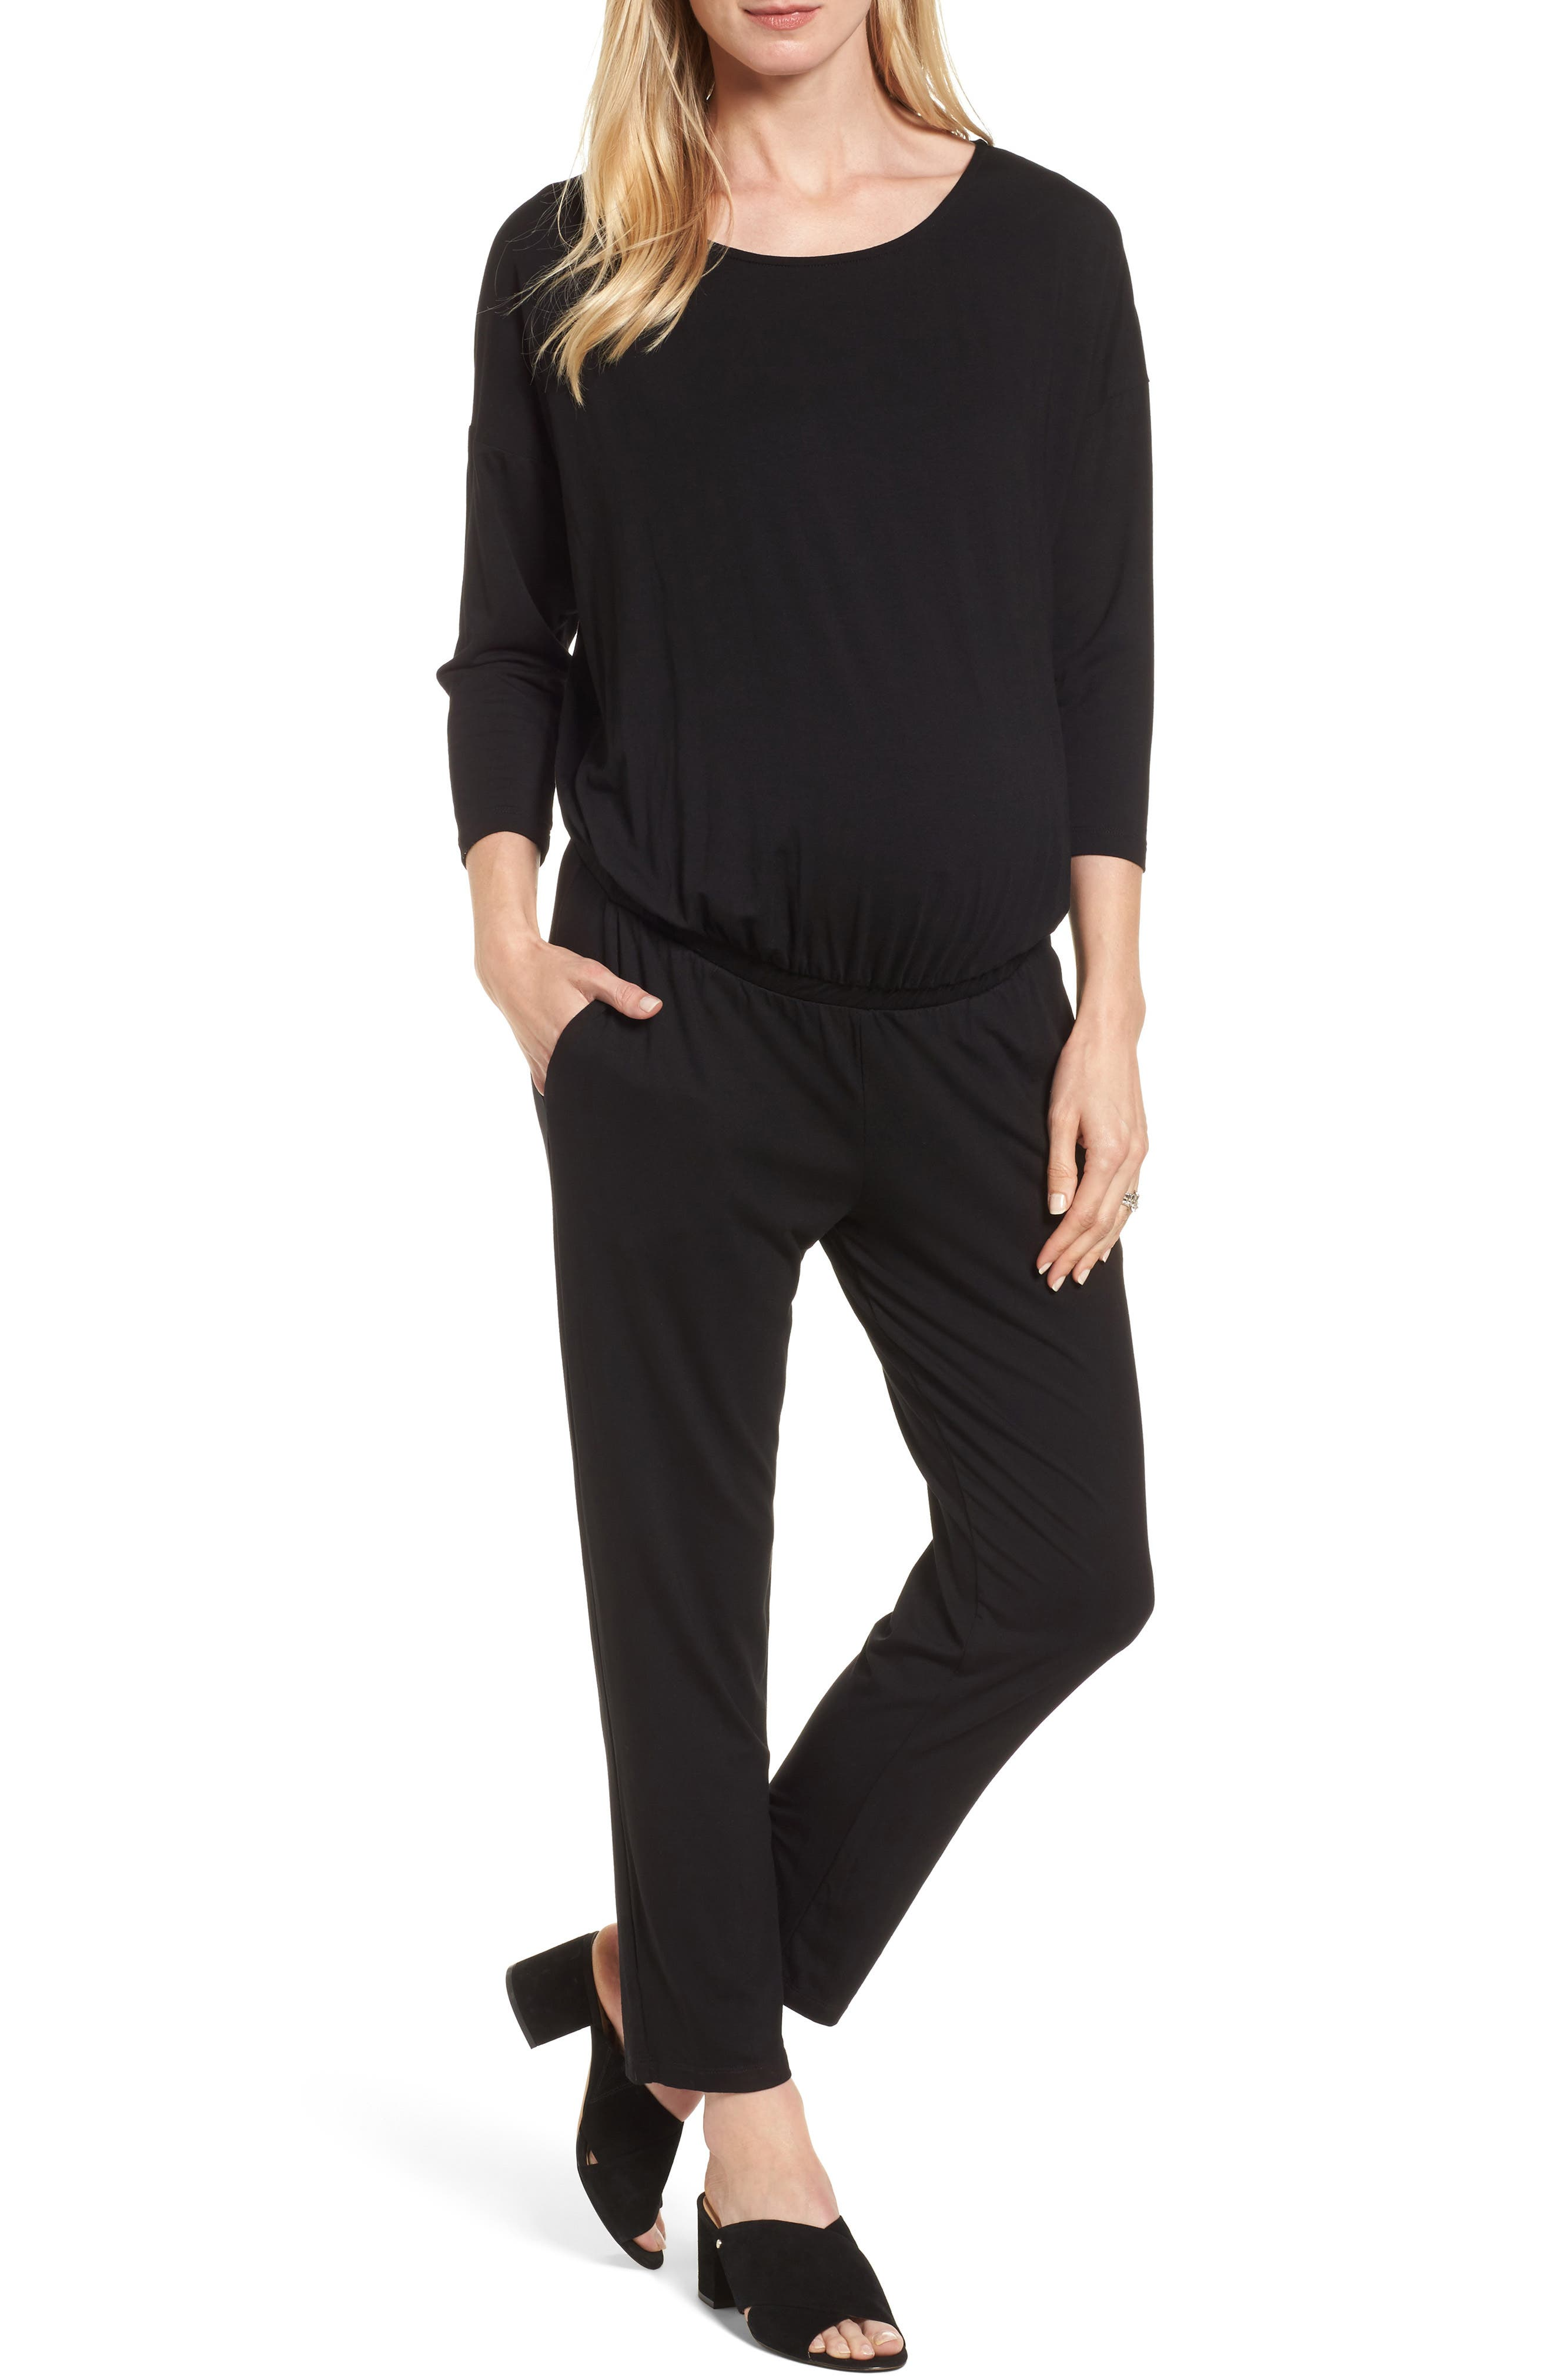 Chloe Maternity Jumpsuit,                         Main,                         color, Caviar Black